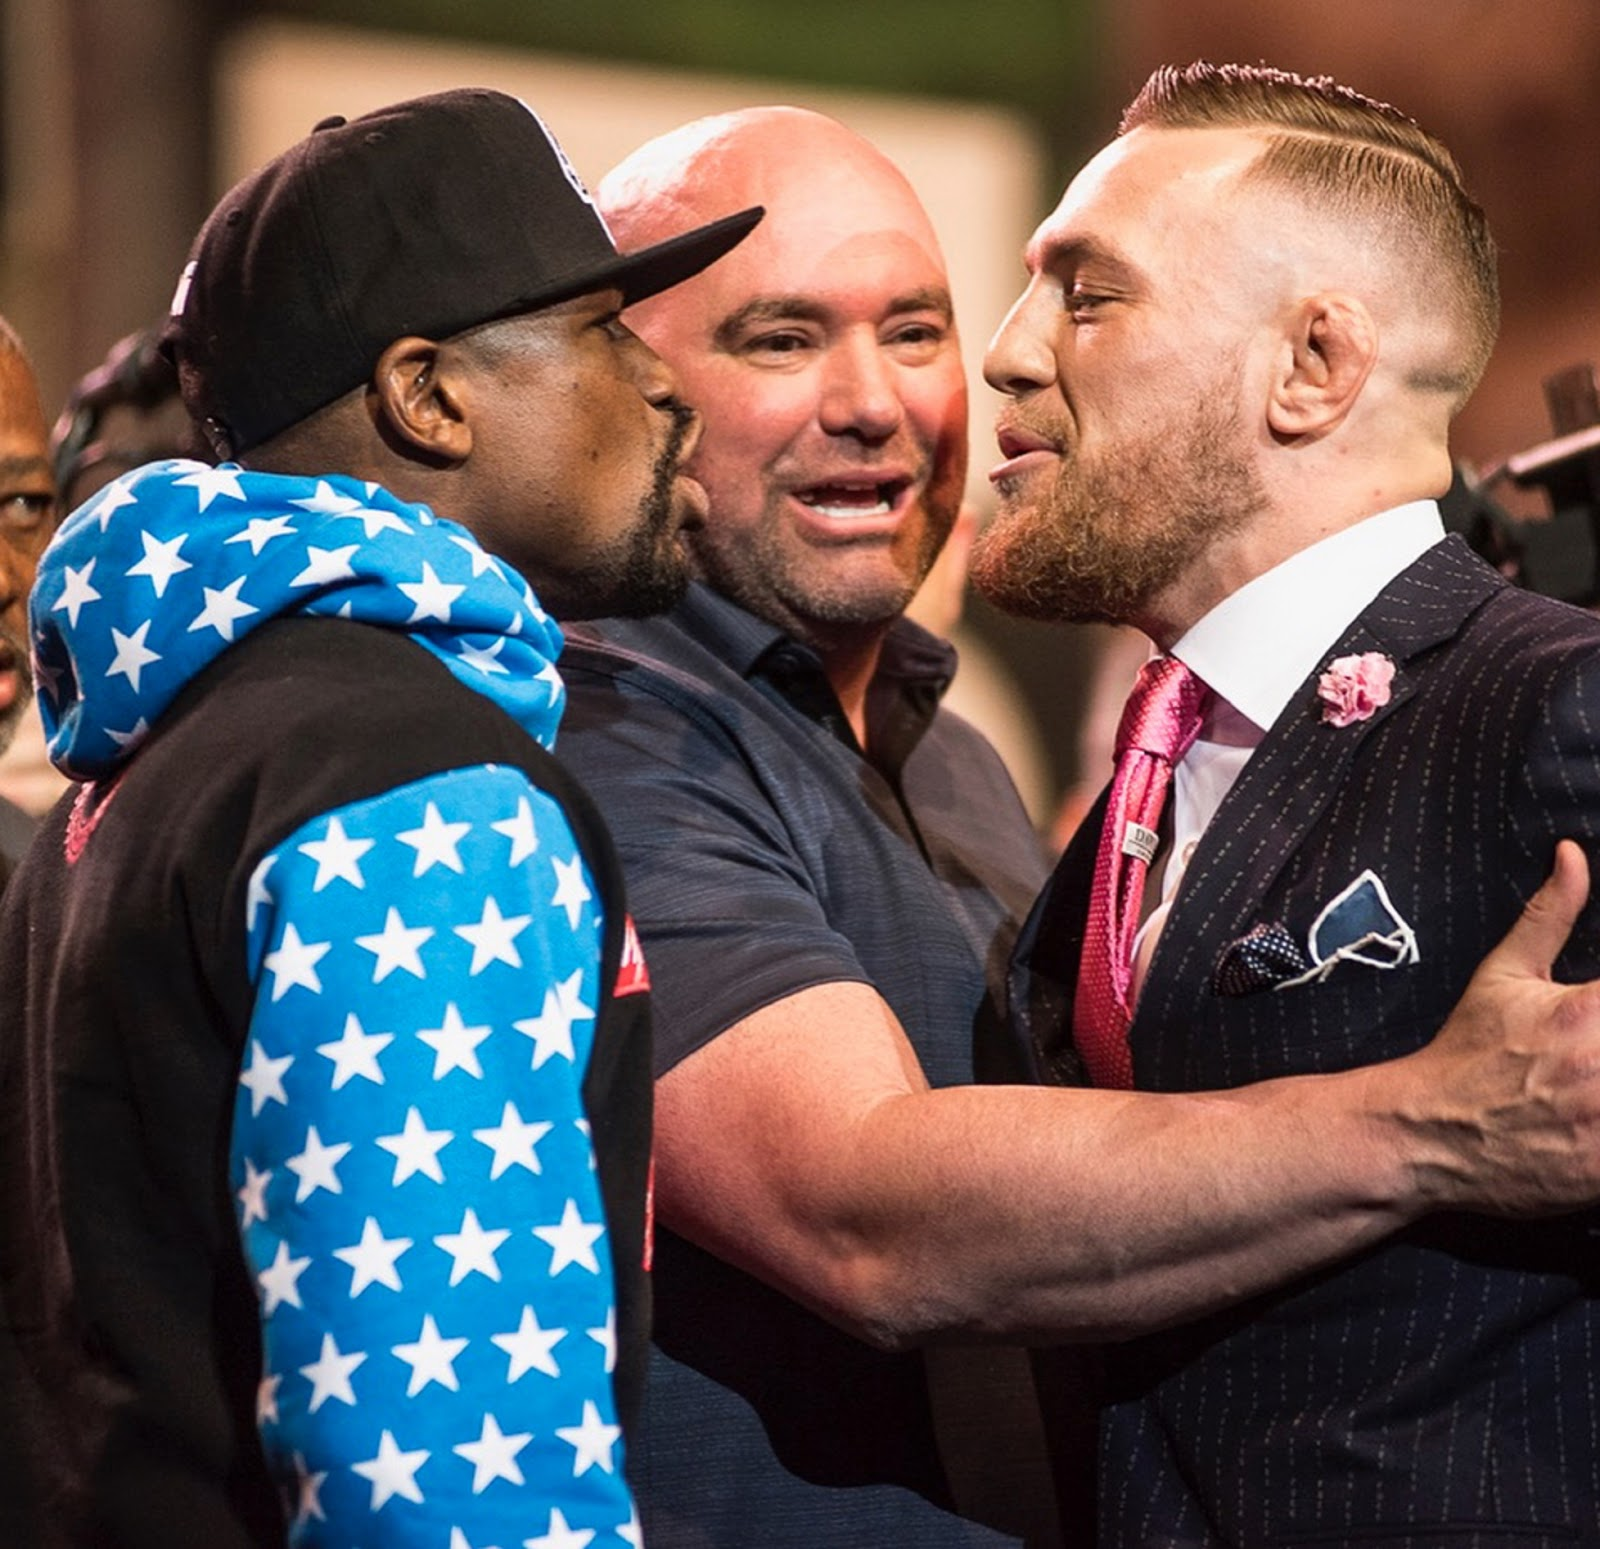 FLOYD MAYWEATHER VS. CONOR MCGREGOR 10